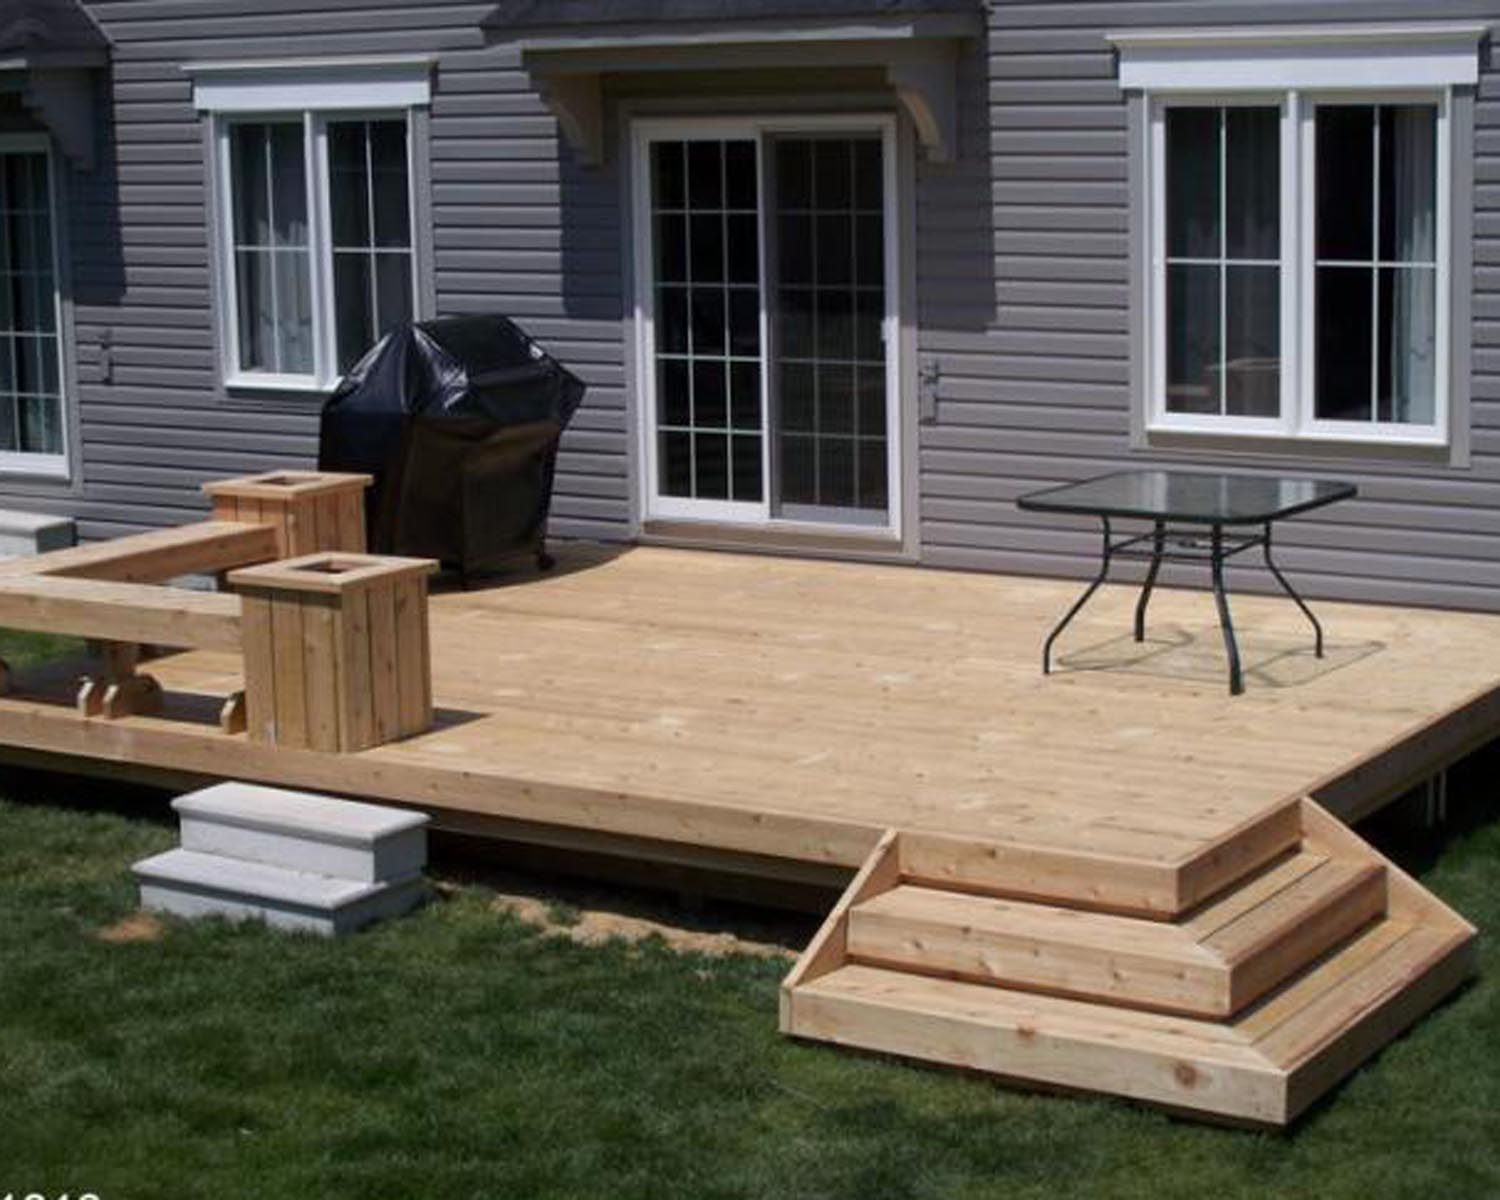 Deck Design Ideas deck design ideas woohome 15 Deck Ideas Be More When Deck Building Simple But Functional Designs Can